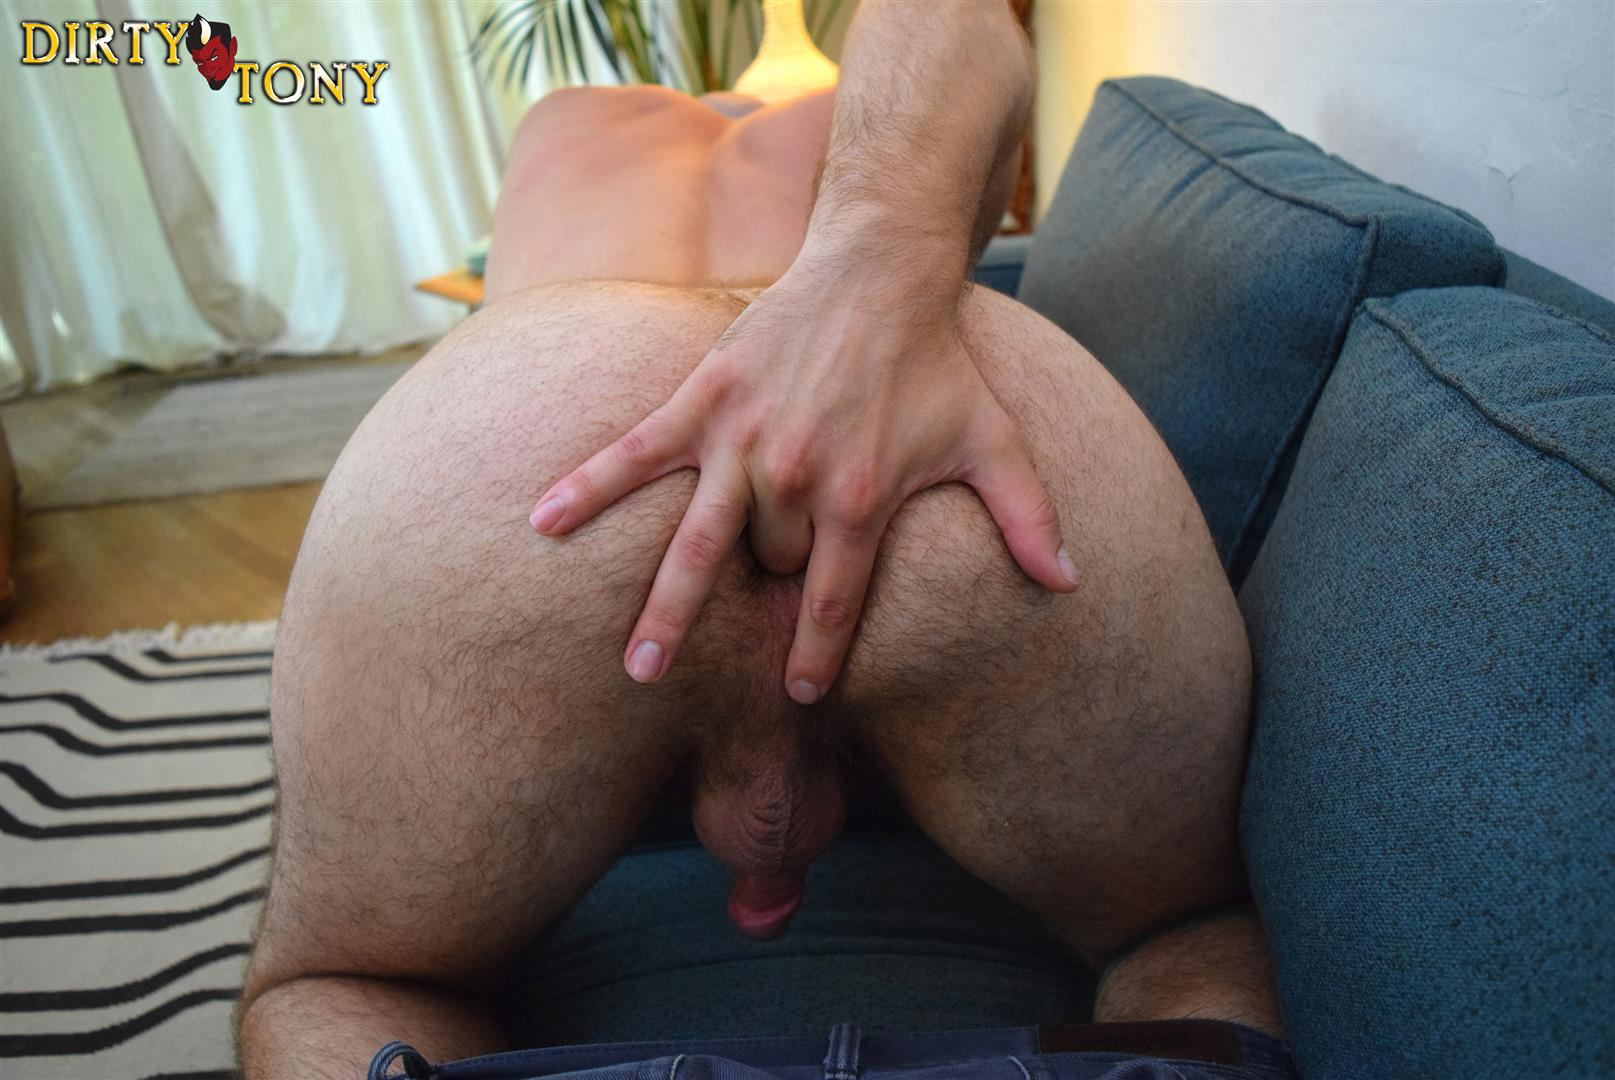 Dirty Tony Damon Andros Hairy Otter With A Thick Cock Amateur Gay Porn 11 Jocked Up Furry Otter Stroking His Thick Cock